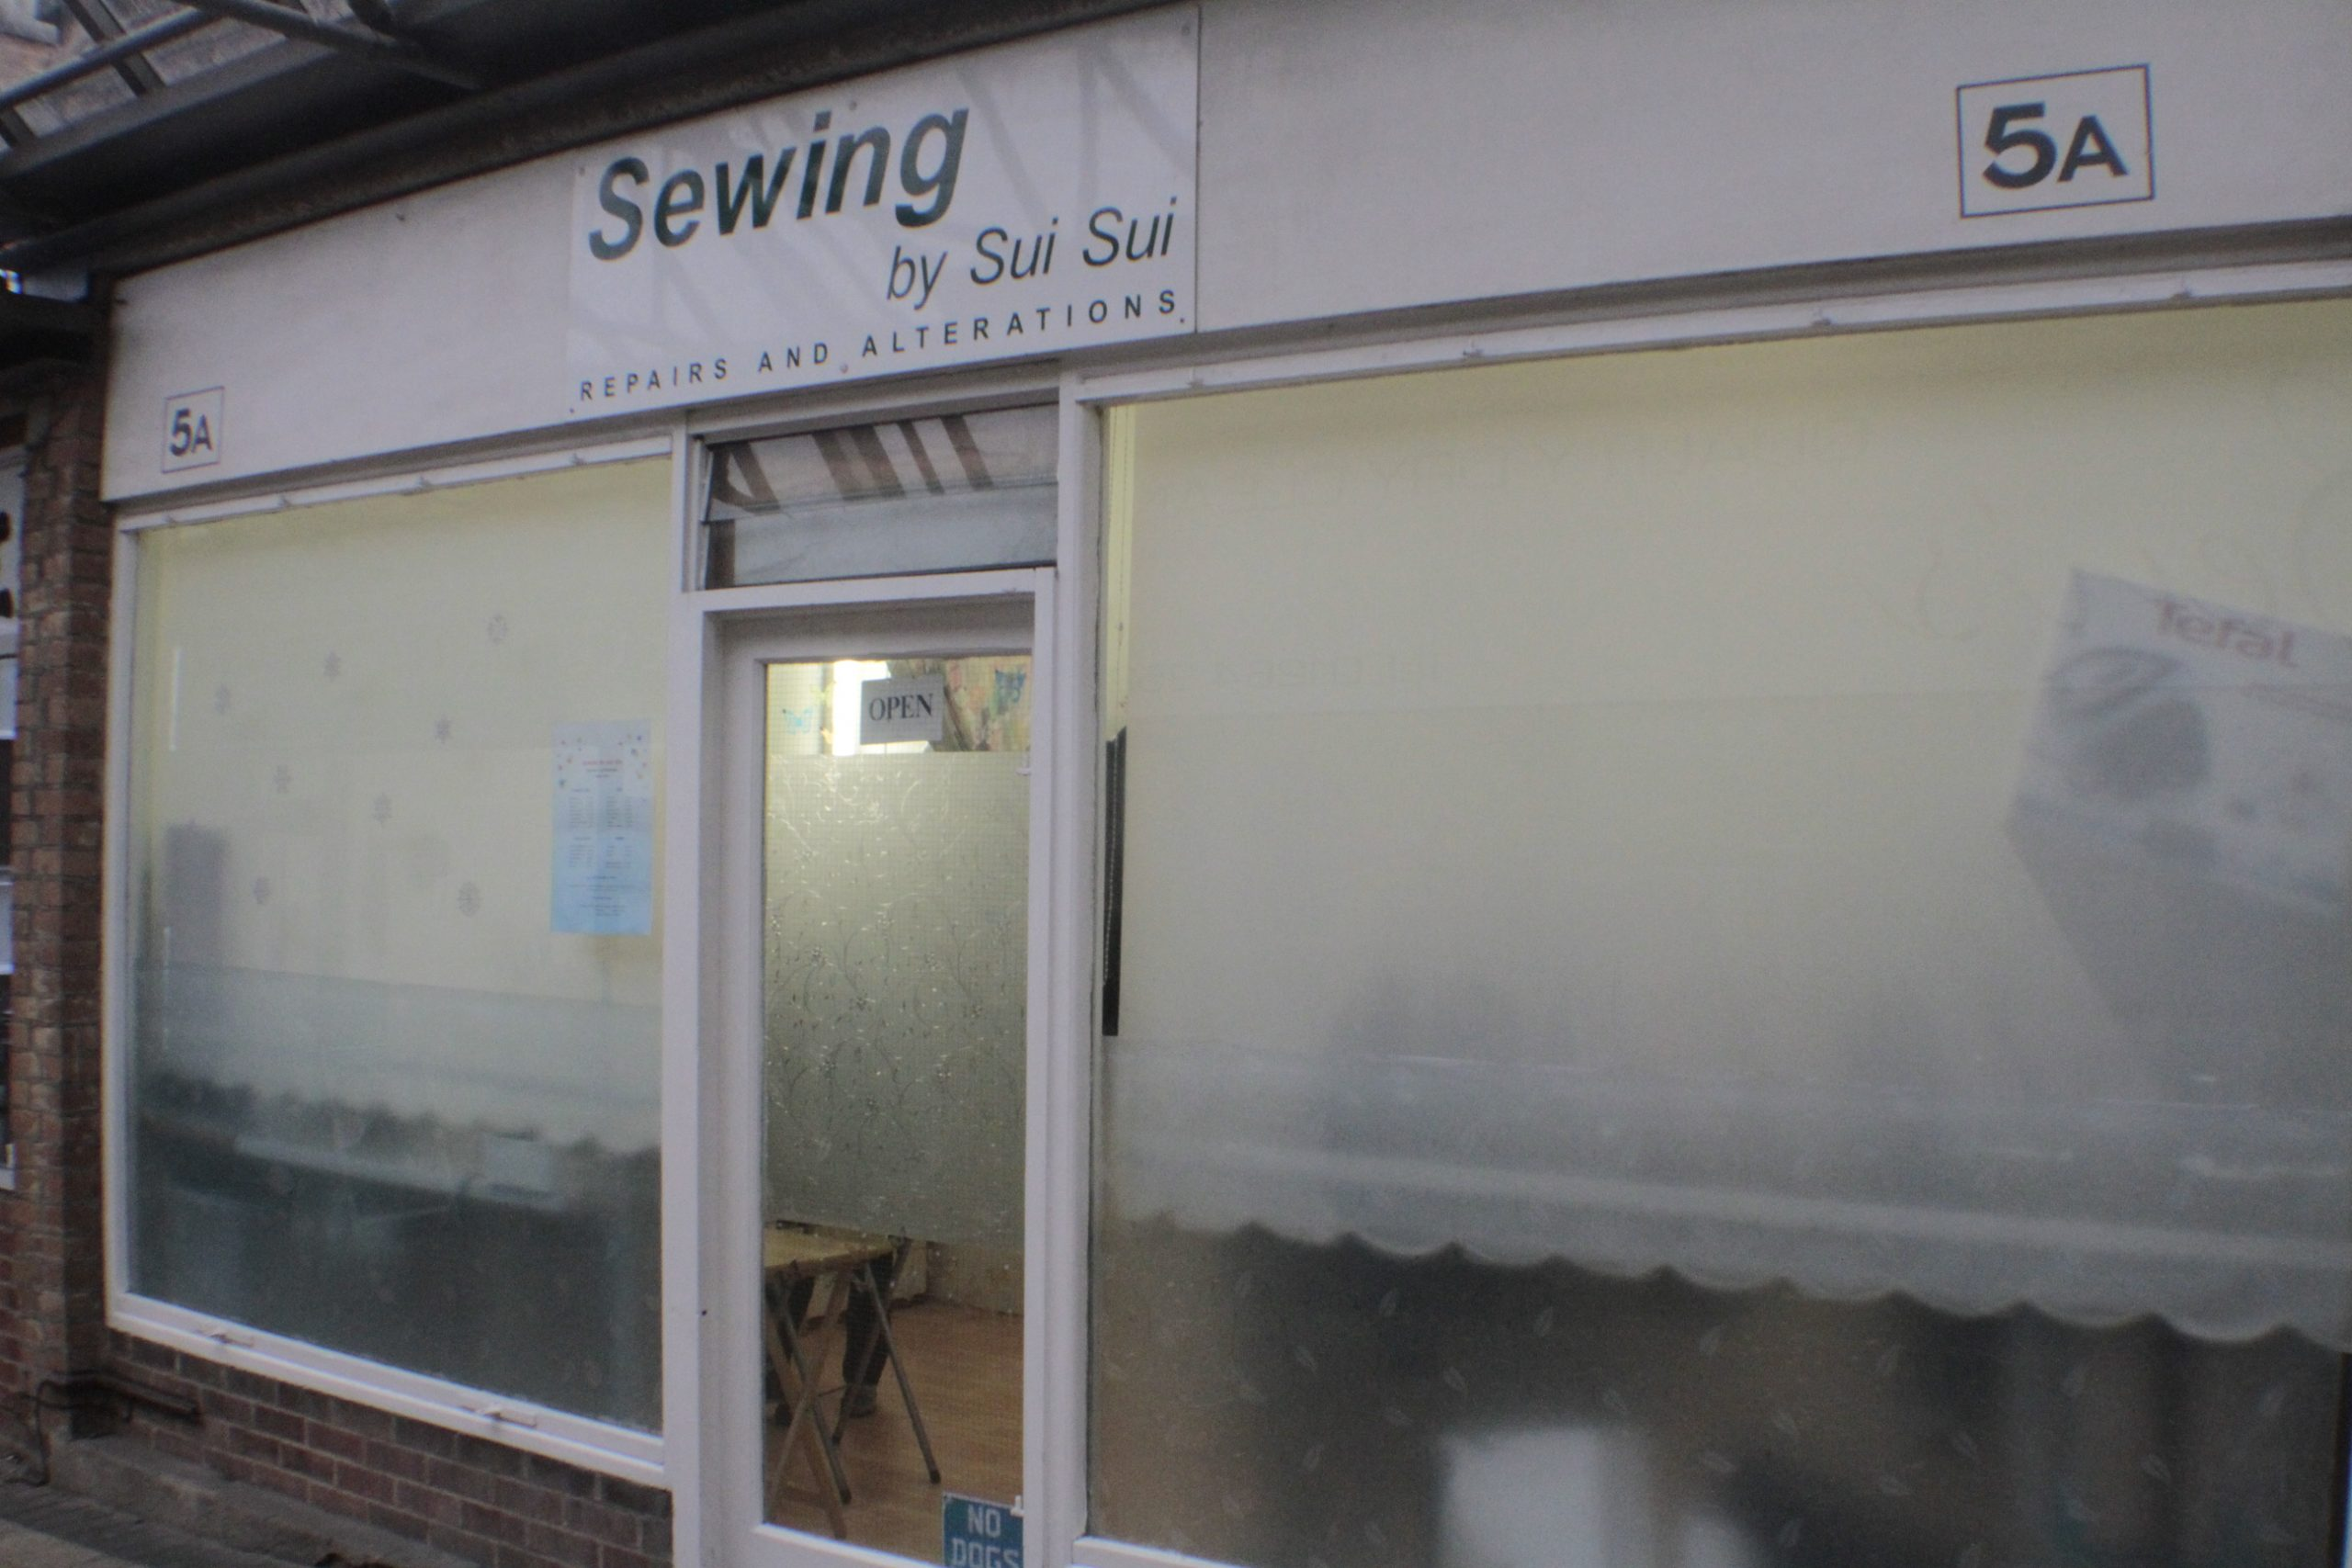 Sewing by Sui Sui